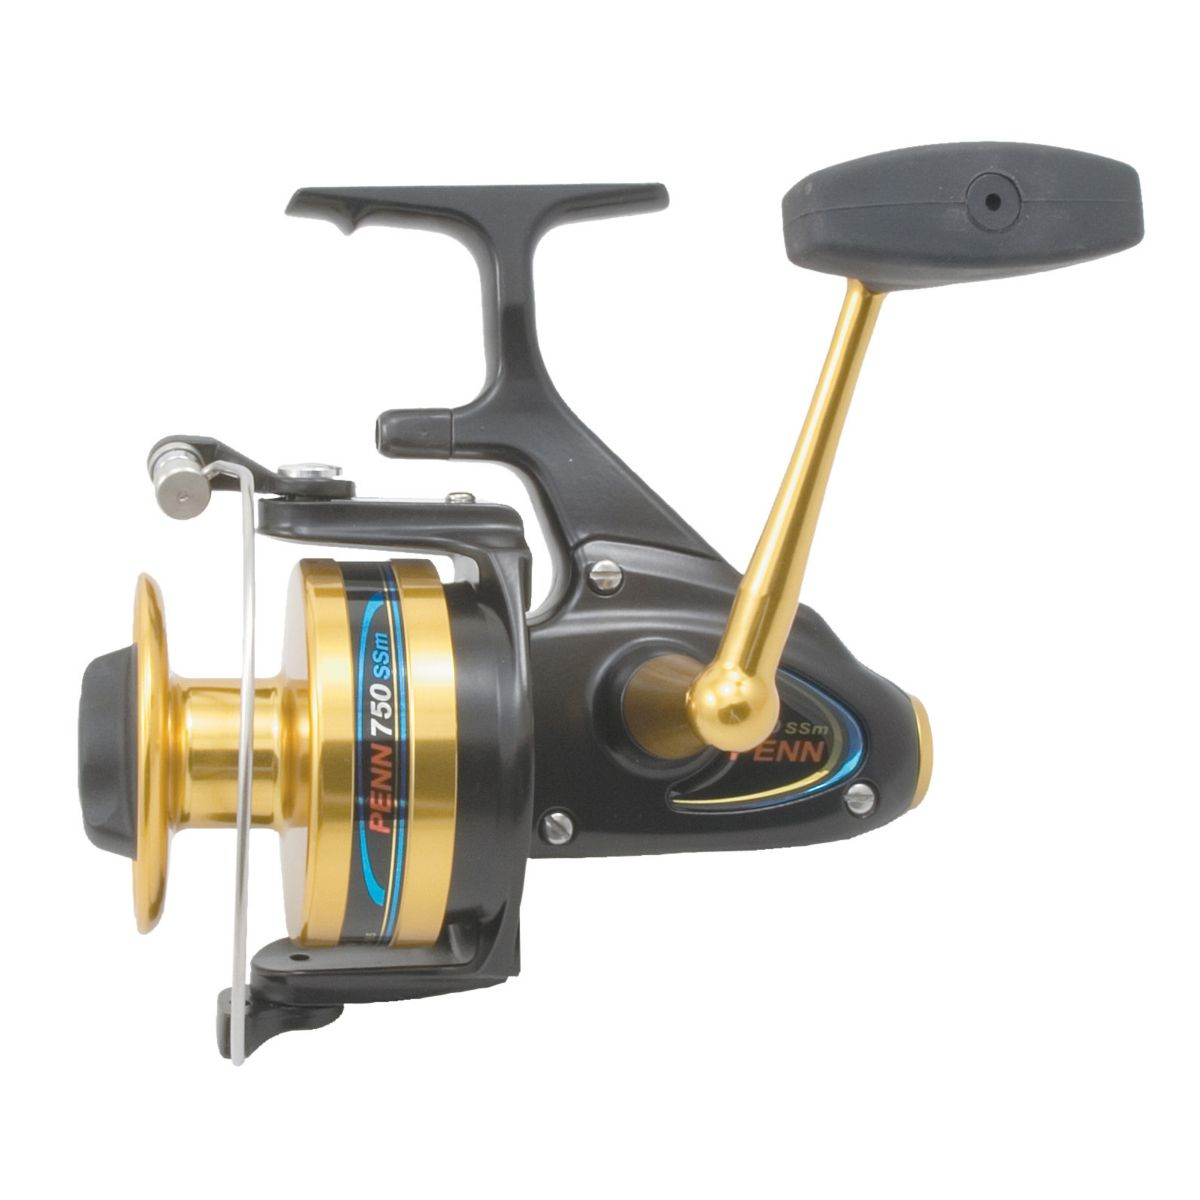 Penn 750SSM Spinfisher Metal Reel